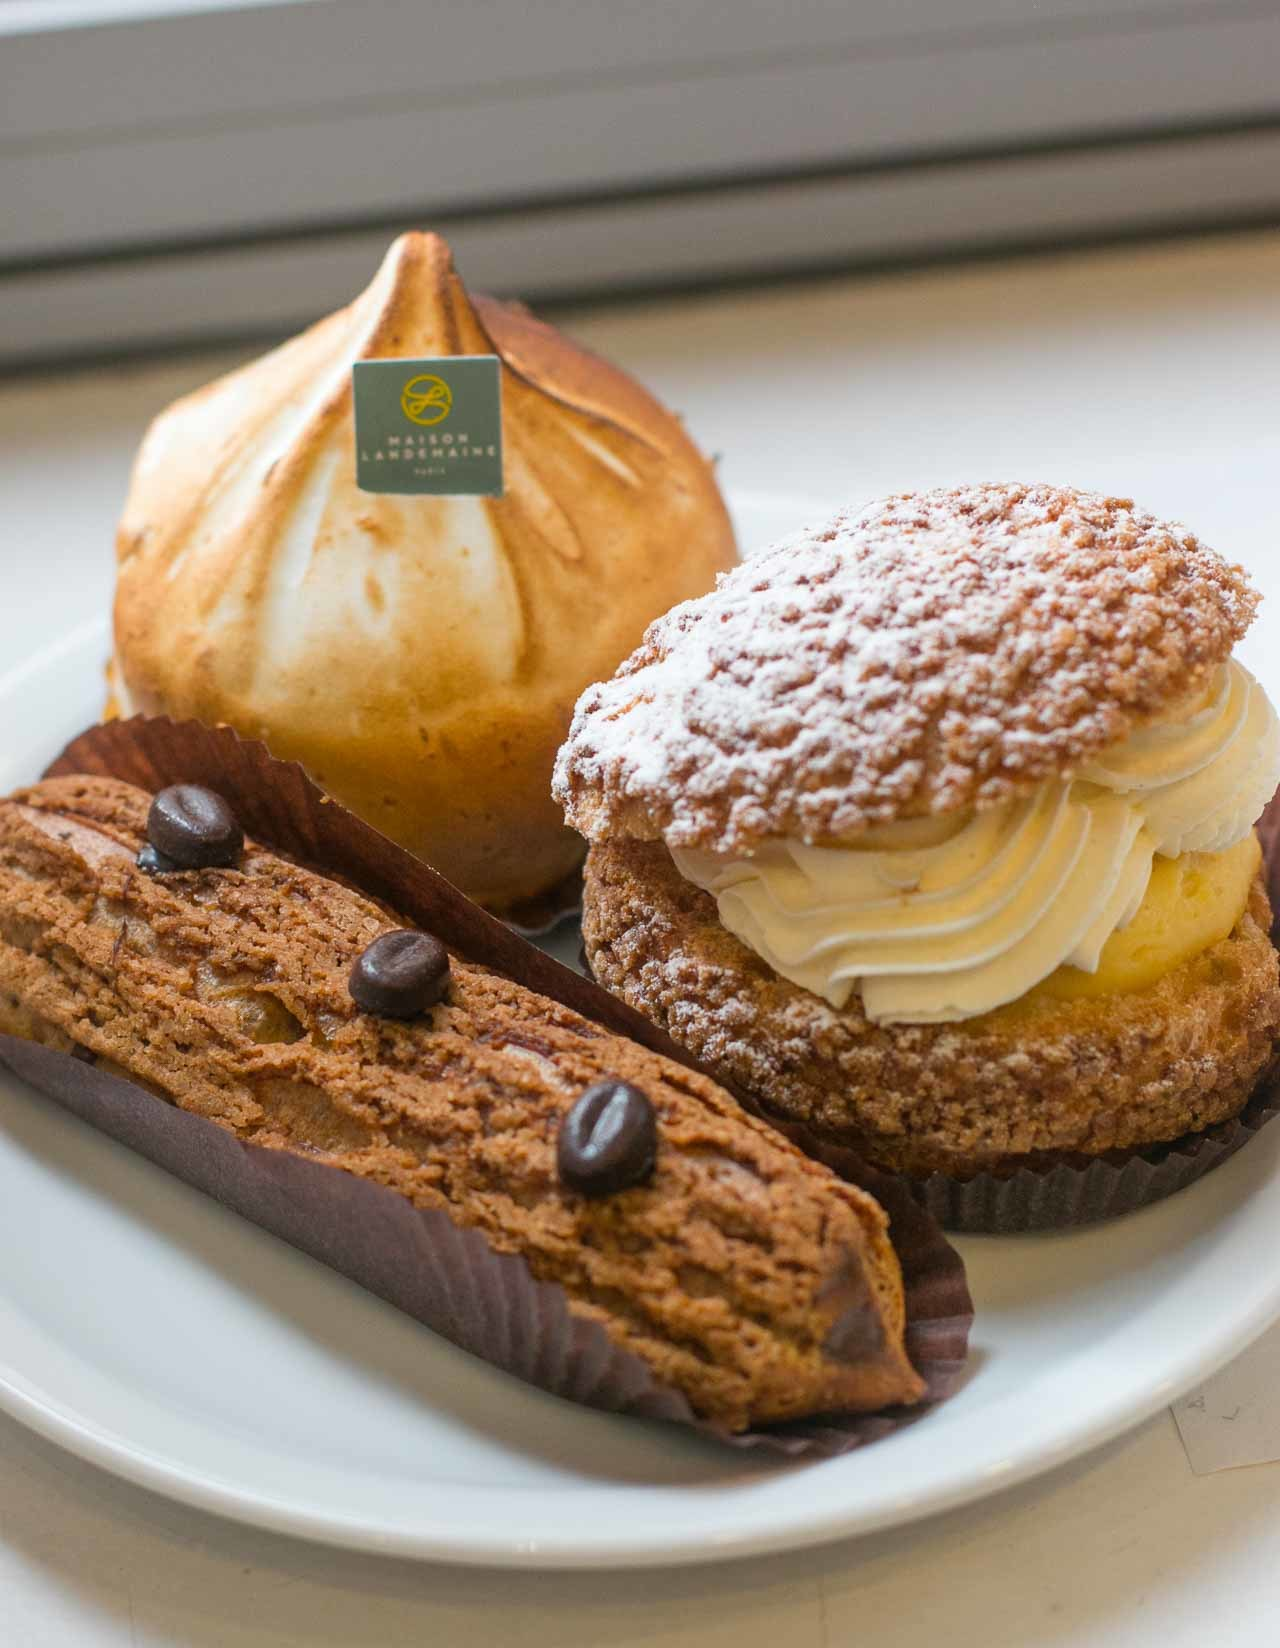 Maison Landemaine: French bakery in Paris